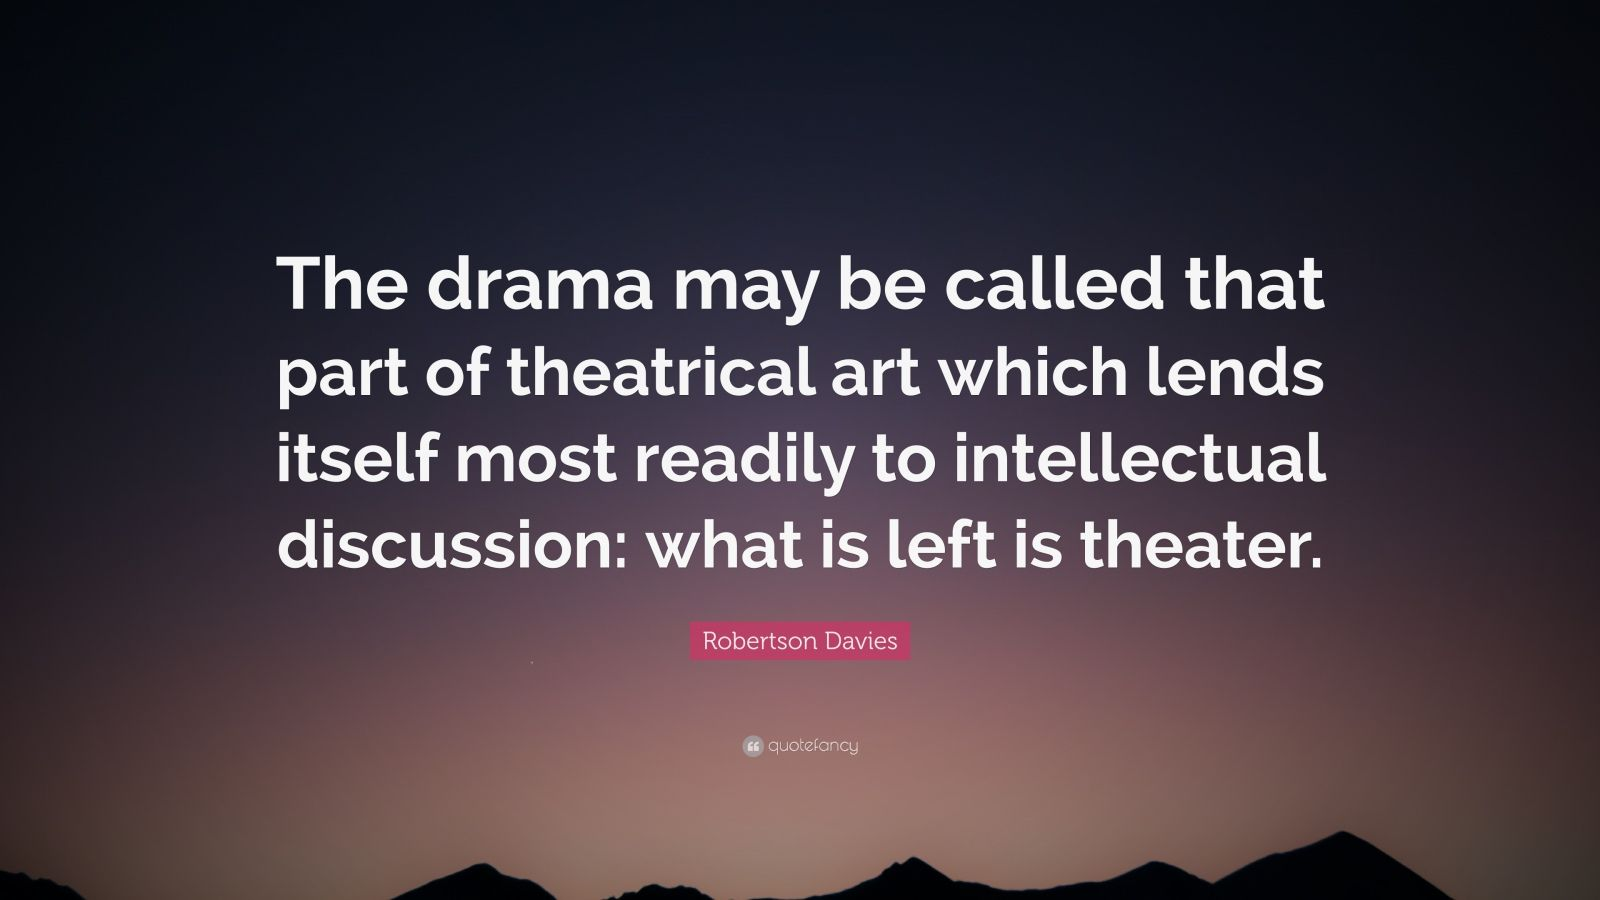 """Robertson Davies Quote: """"The drama may be called that part of theatrical art which lends itself most readily to intellectual discussion: what is left is theater."""""""